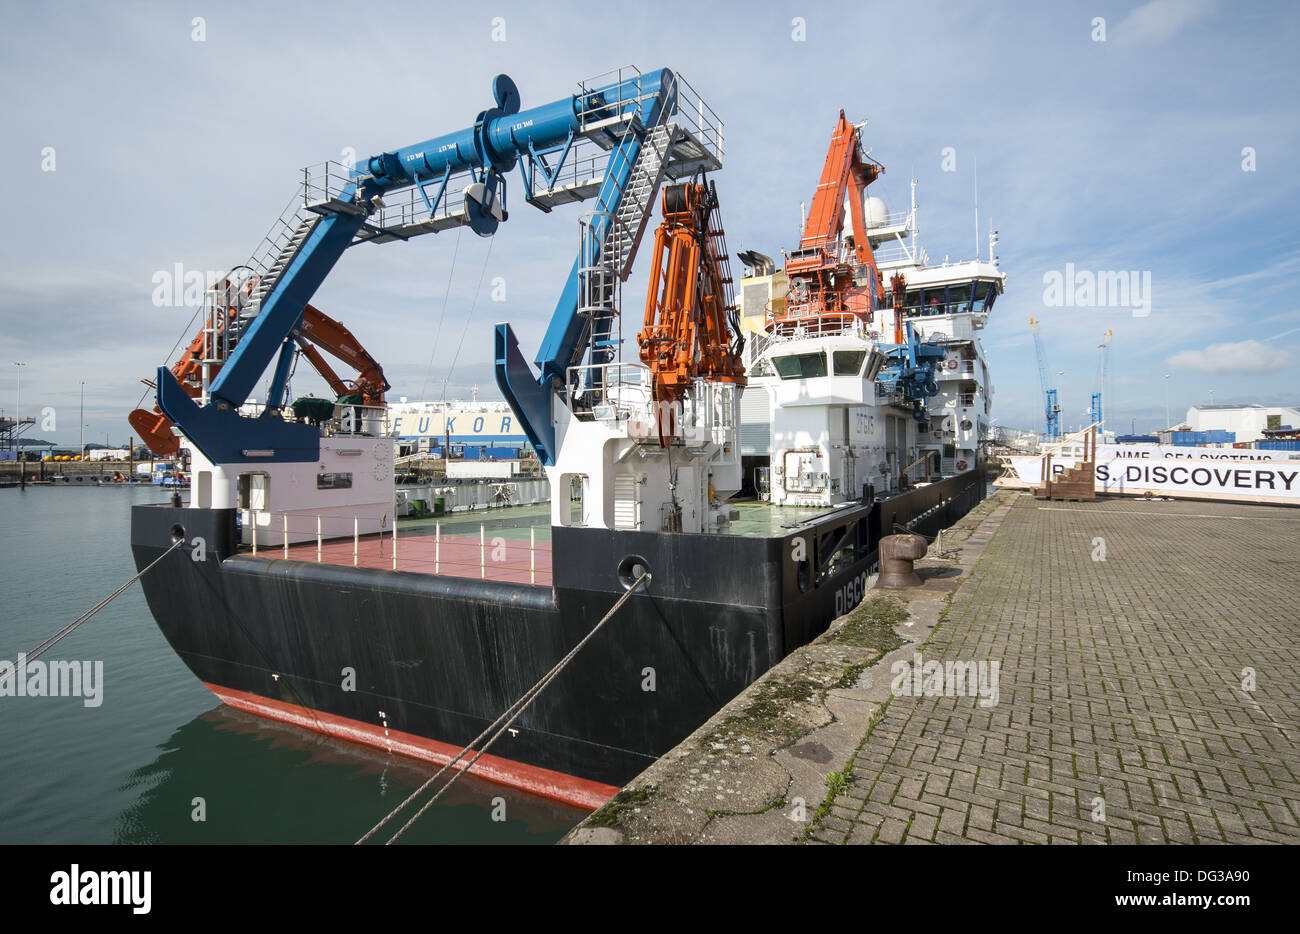 The new RRS Discovery at home in Empress Dock next to the National Oceanography Centre, Southampton, Hampshire, England, UK - Stock Image